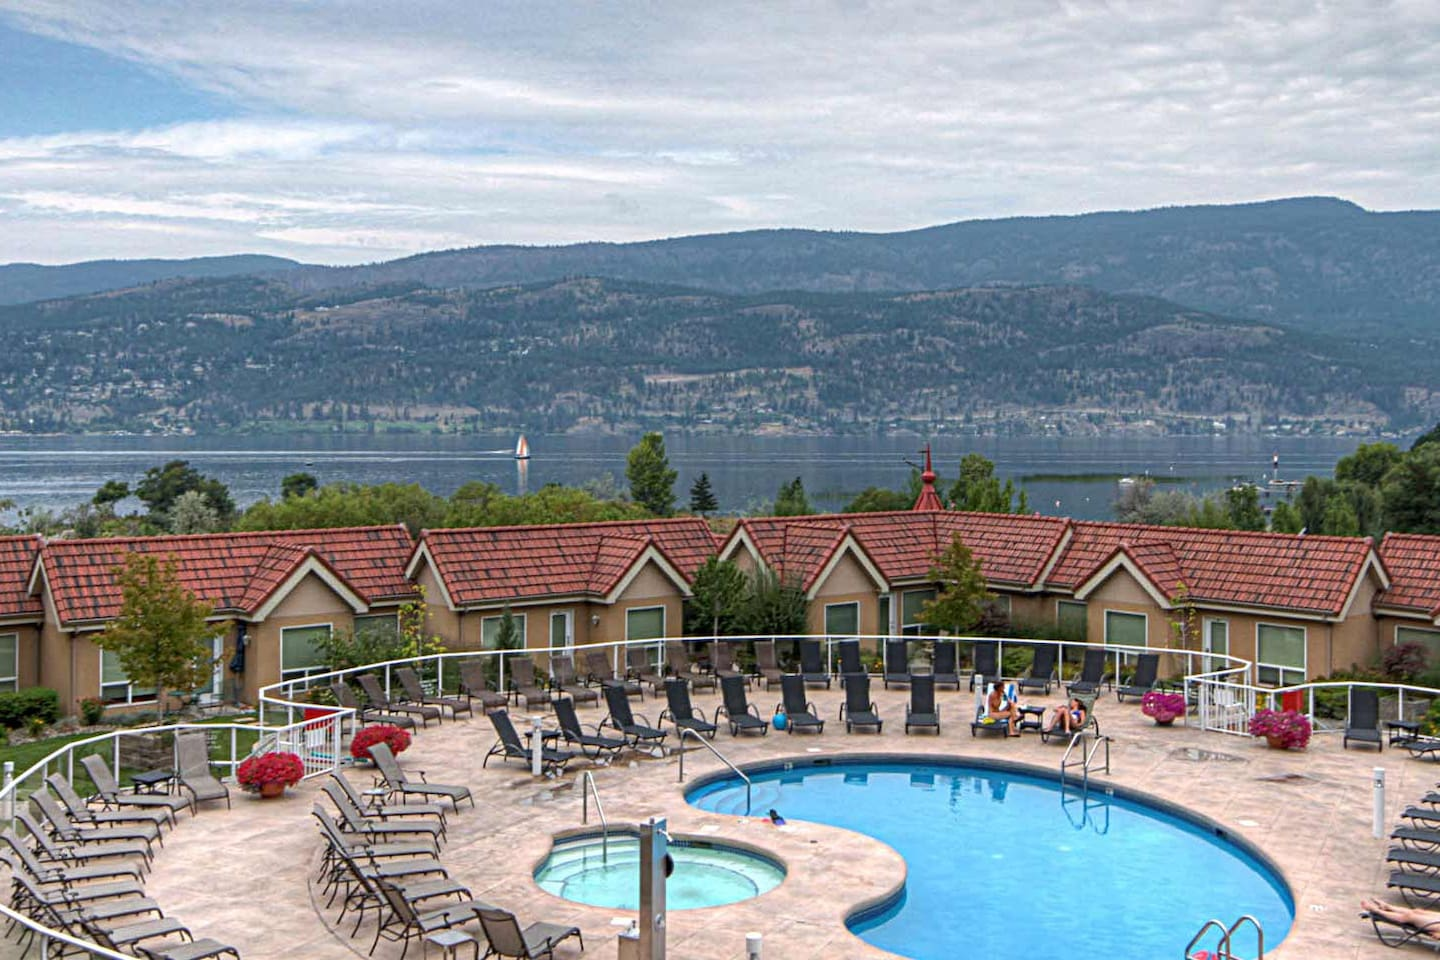 Outdoor pool and lake view from deck